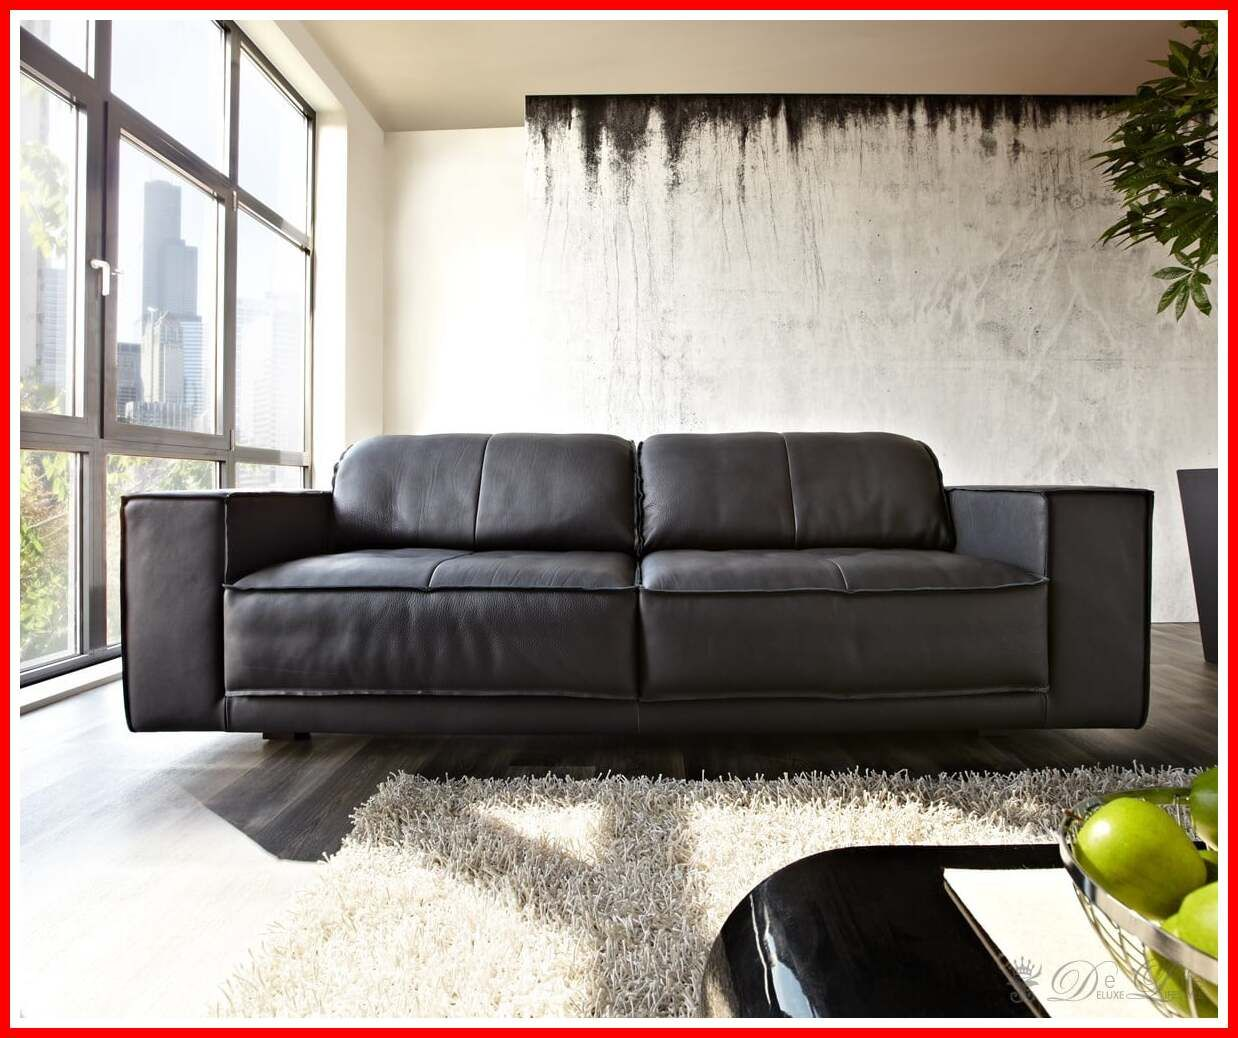 116 Reference Of 2er Ledercouch In 2020 Couch Modern Couch Sofa